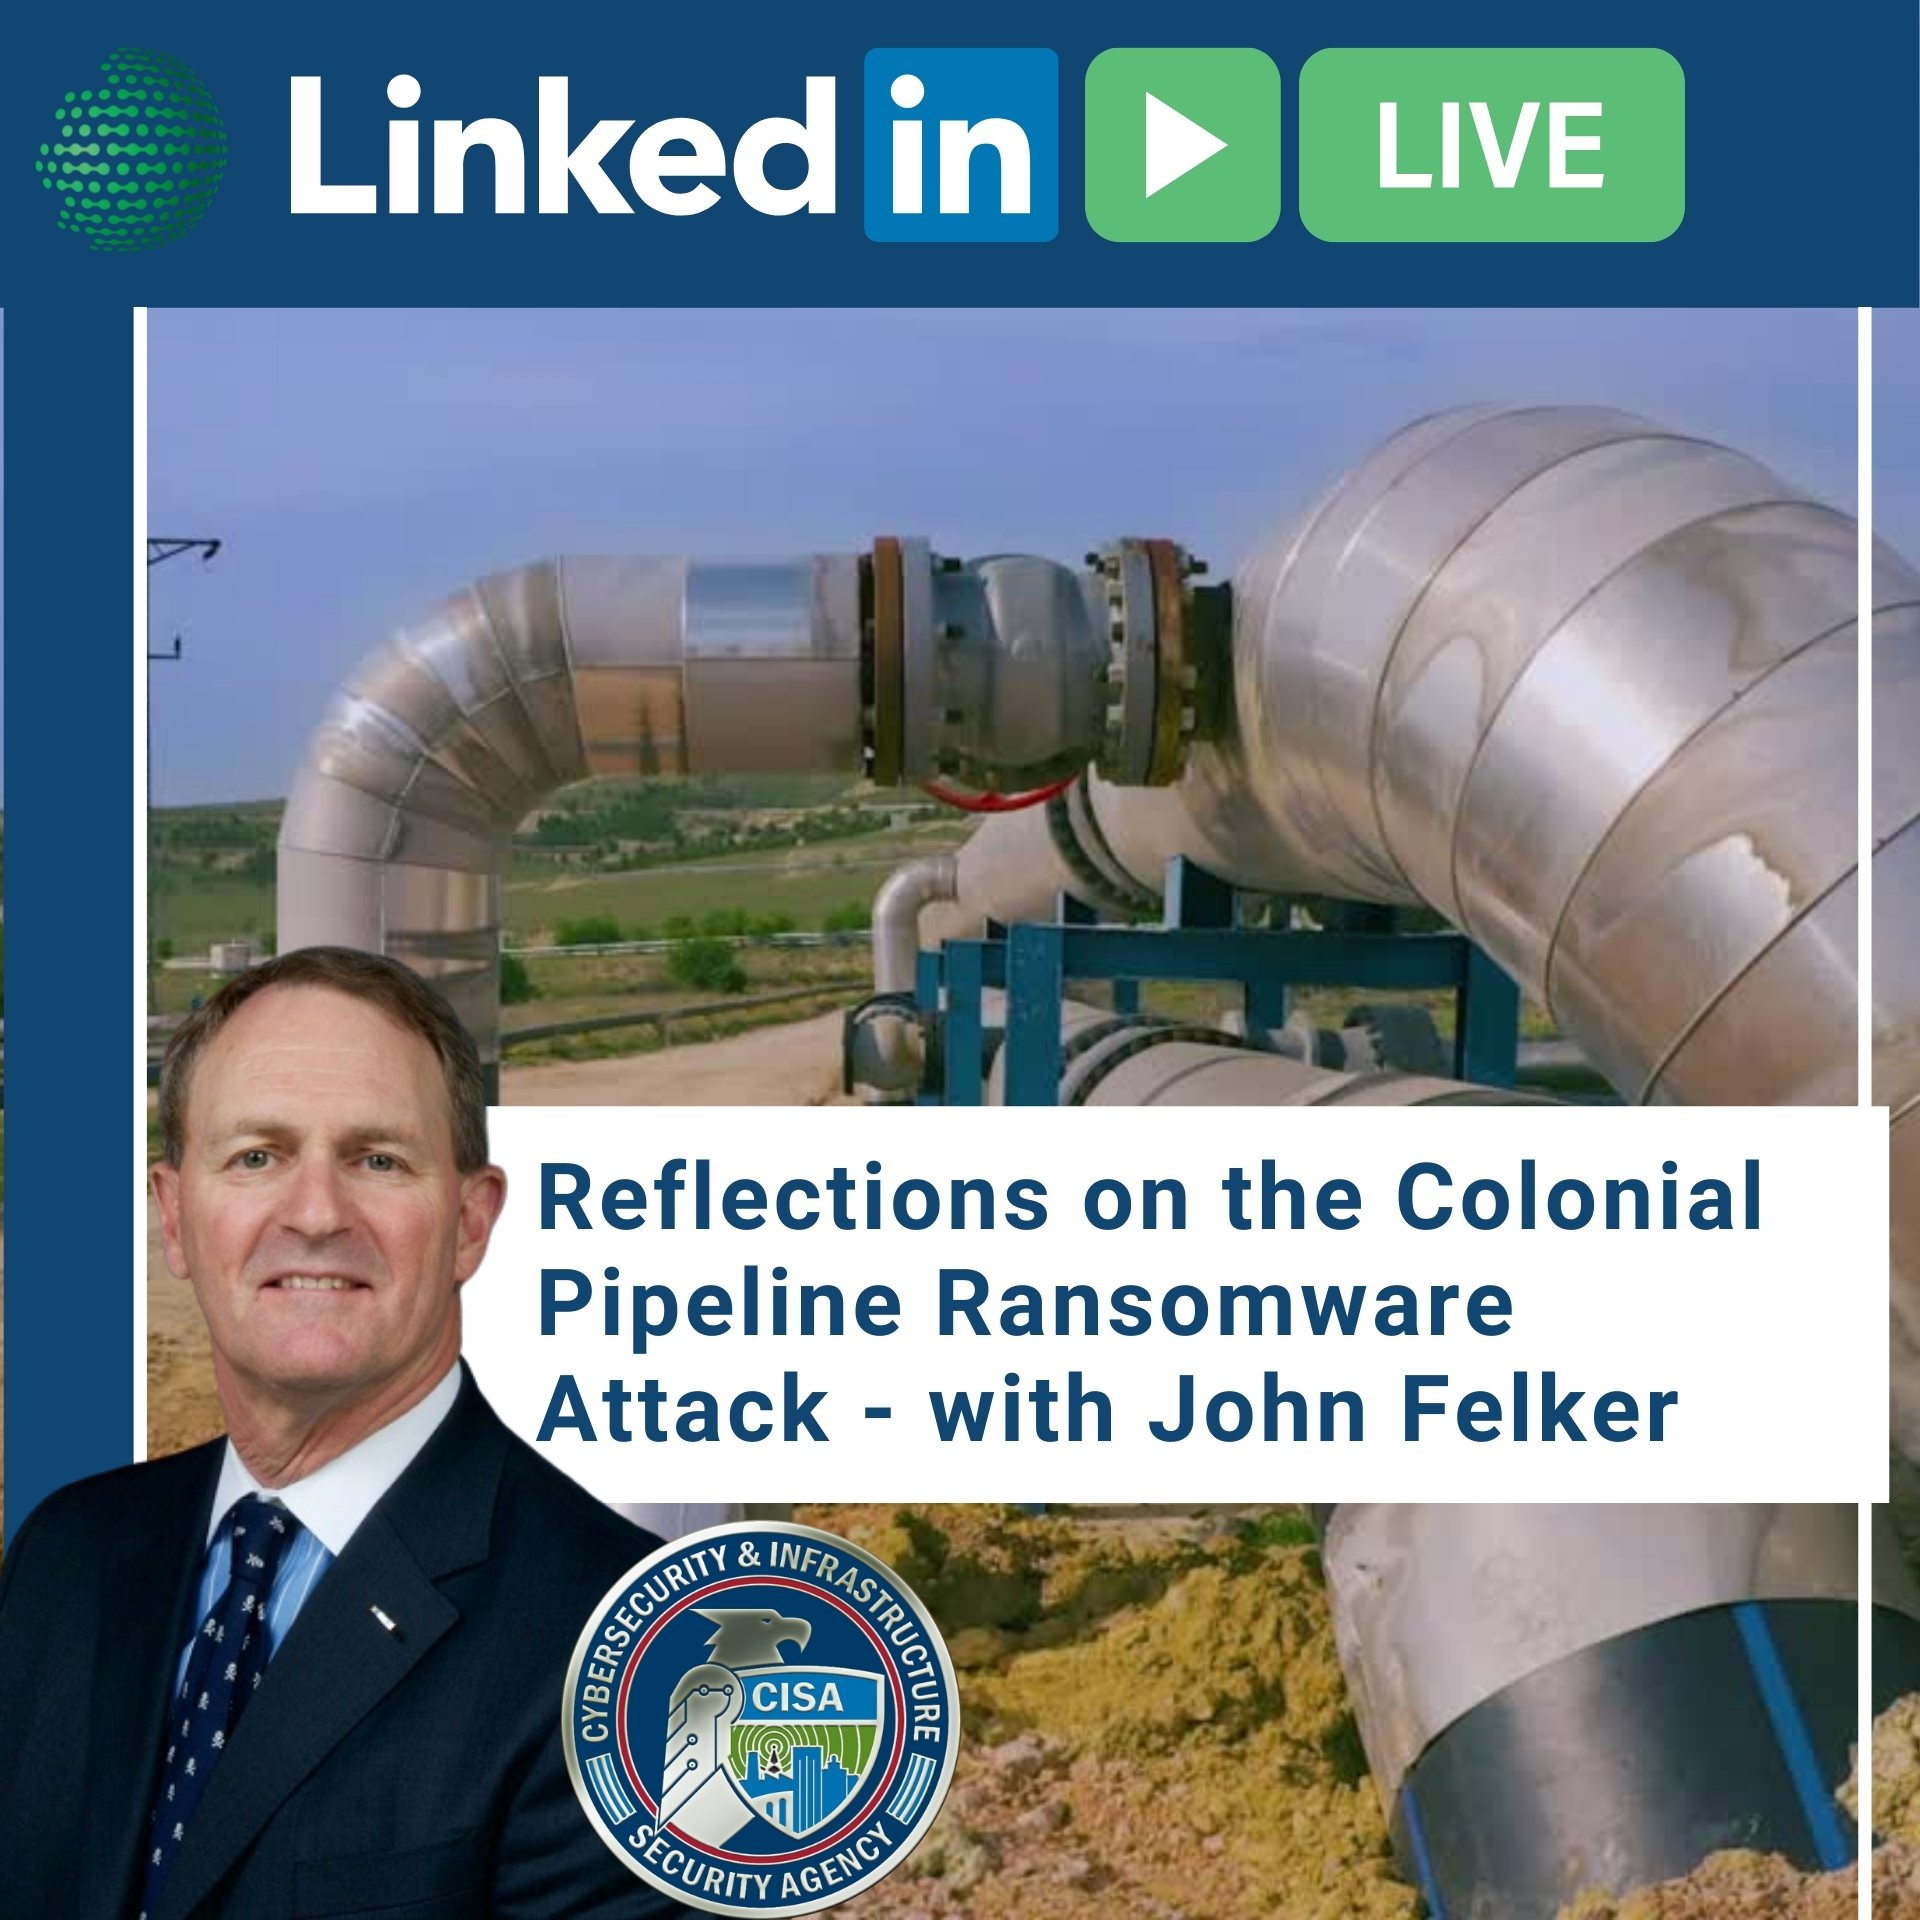 Copy of Reflections on the Colonial Pipeline Ransomware Attack - with John Felker